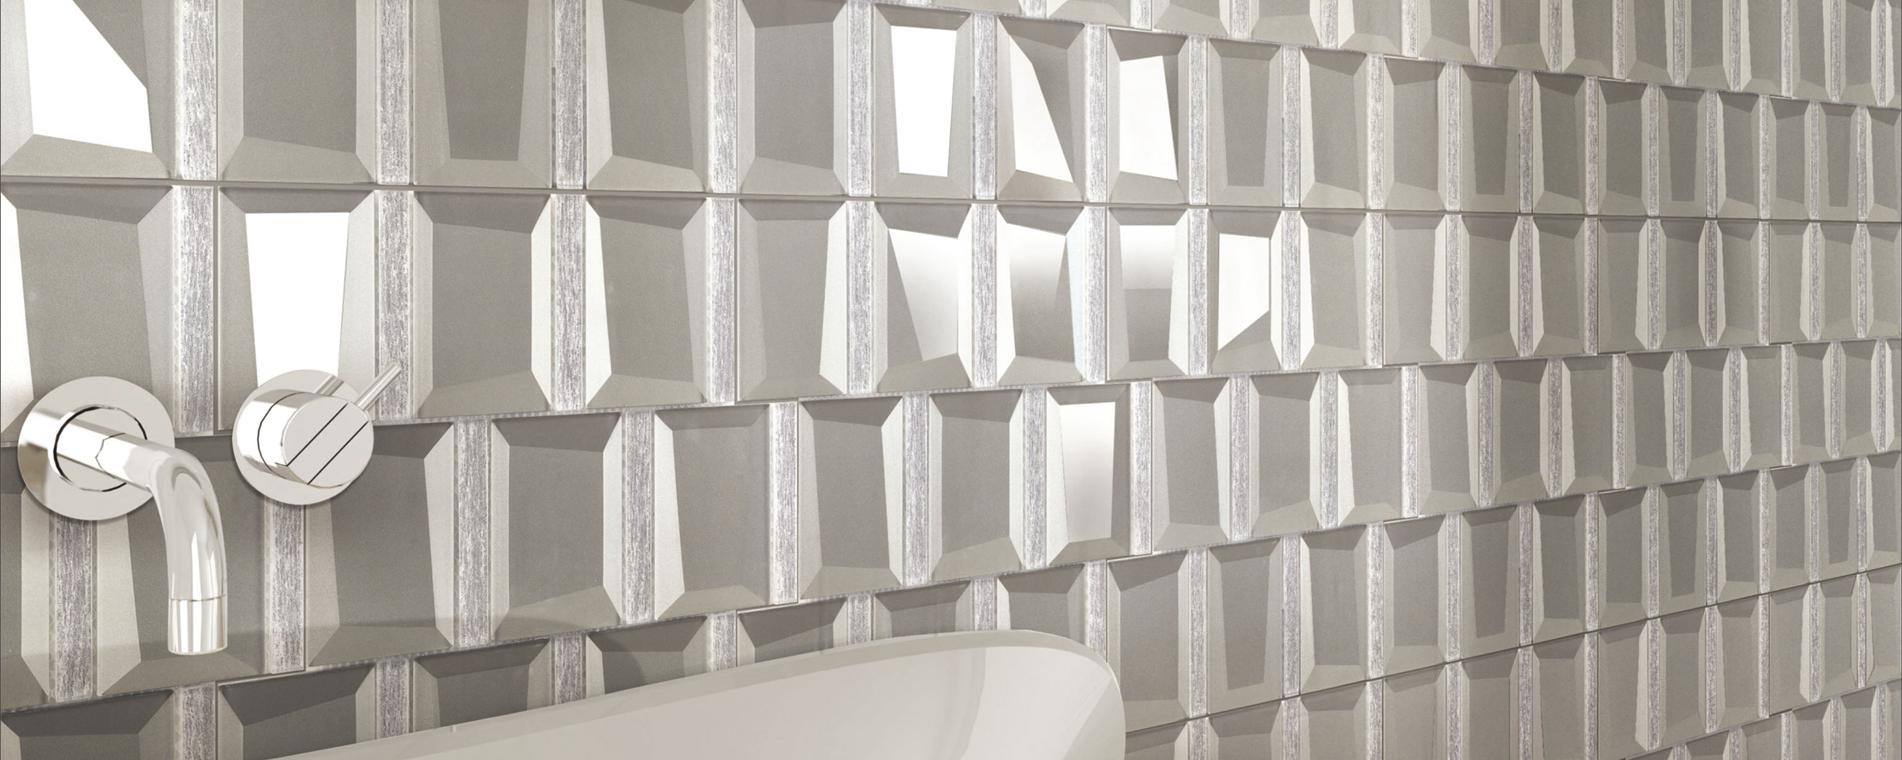 首页BANER-3d beveled glass mosaic